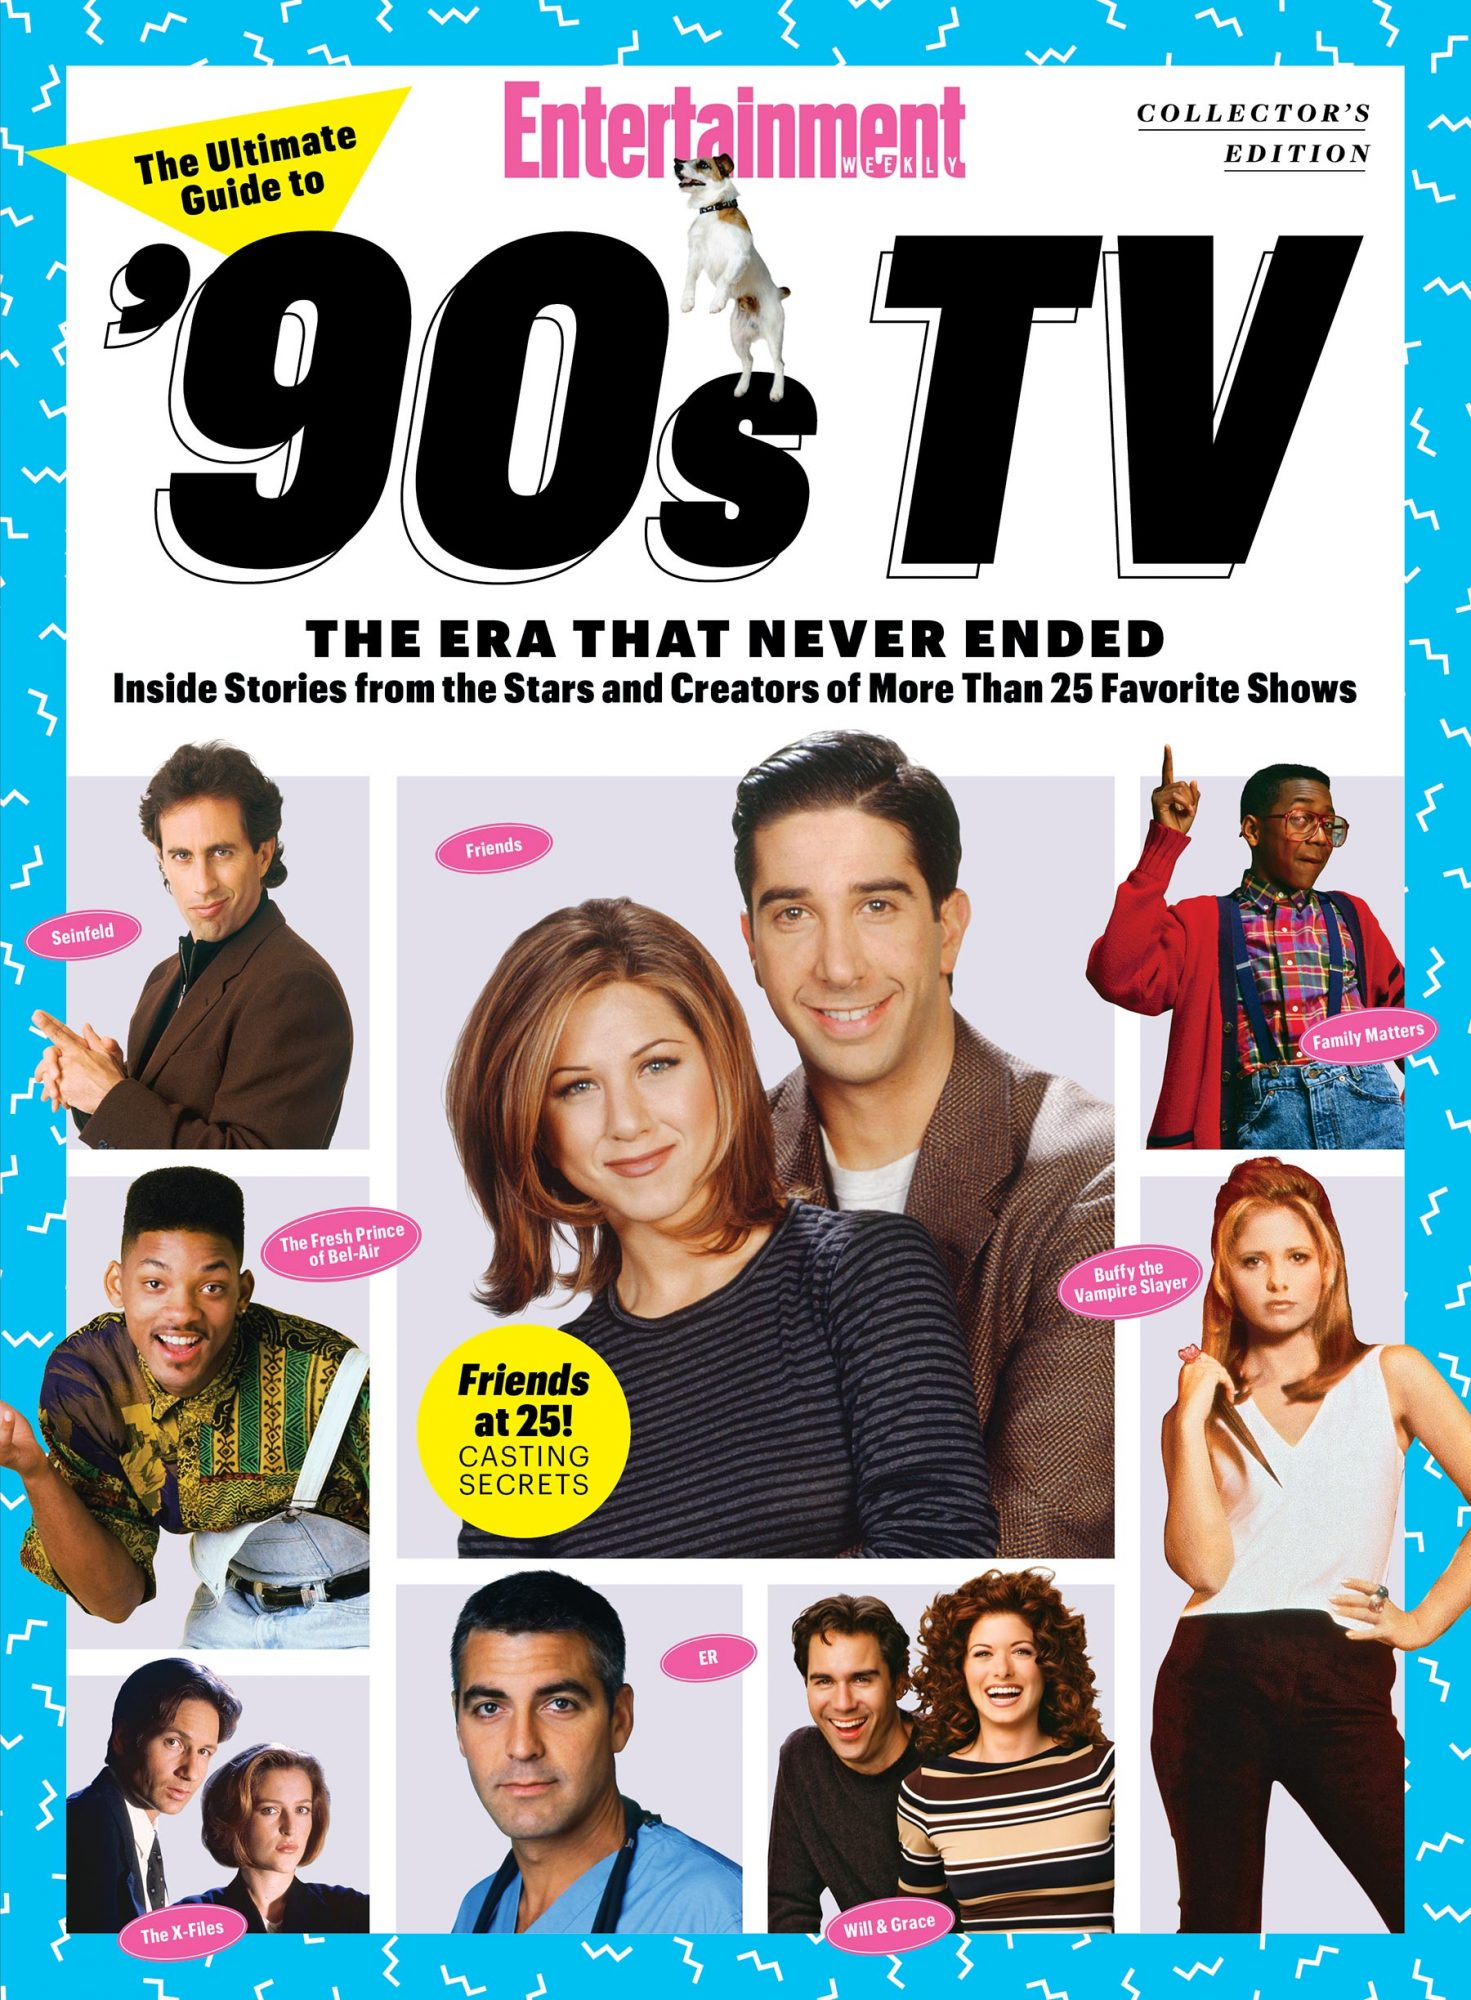 The Ultimate Guide to '90s TV: The Era That Never Ended Collector's Edition cover